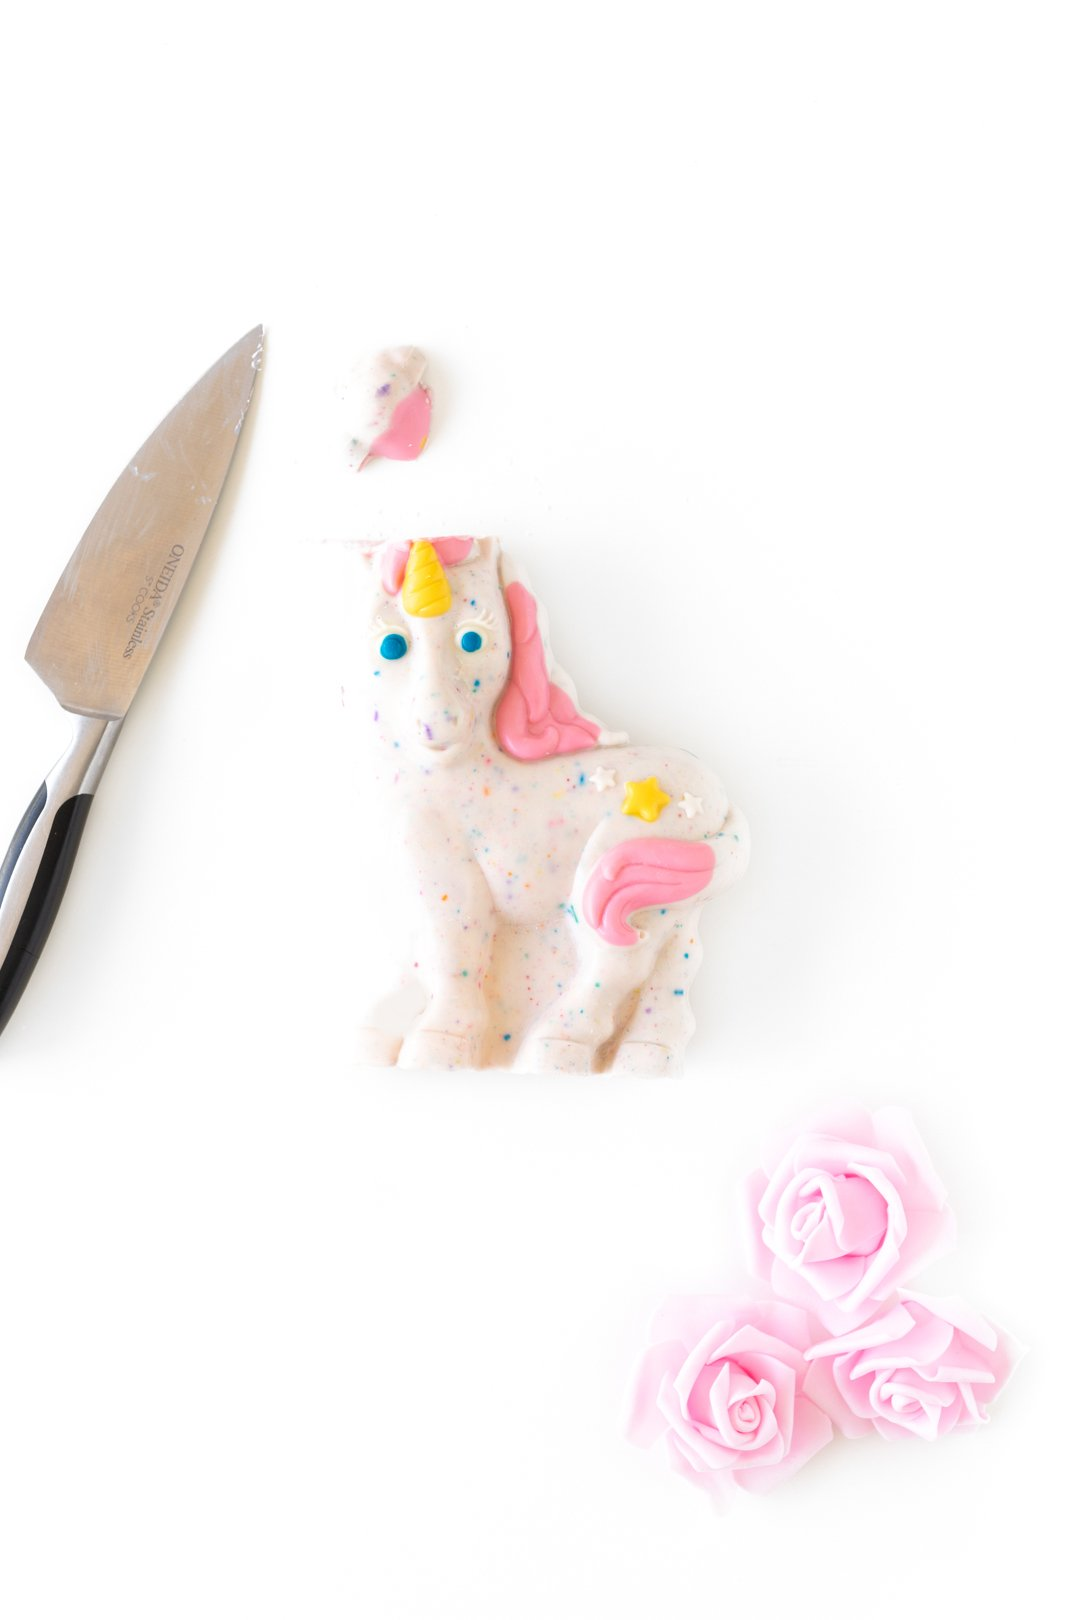 melting top off of hollow chocolate unicorn with a knife